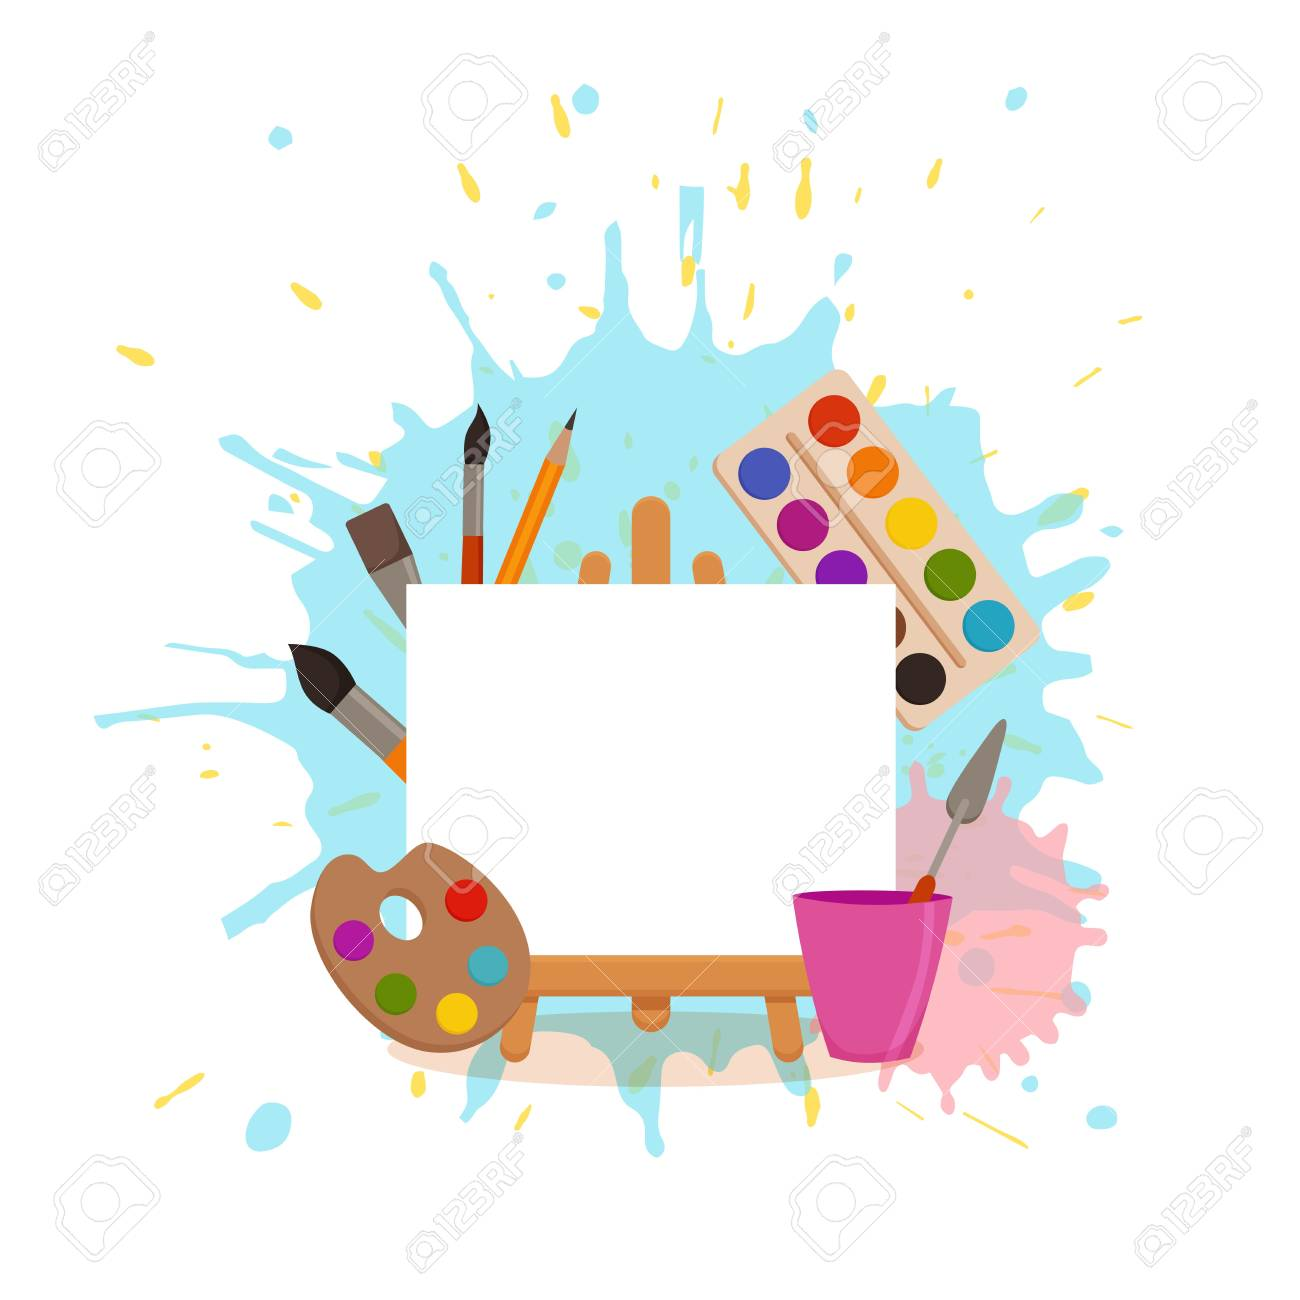 Painting tools elements cartoon colorful vector concept. Art..